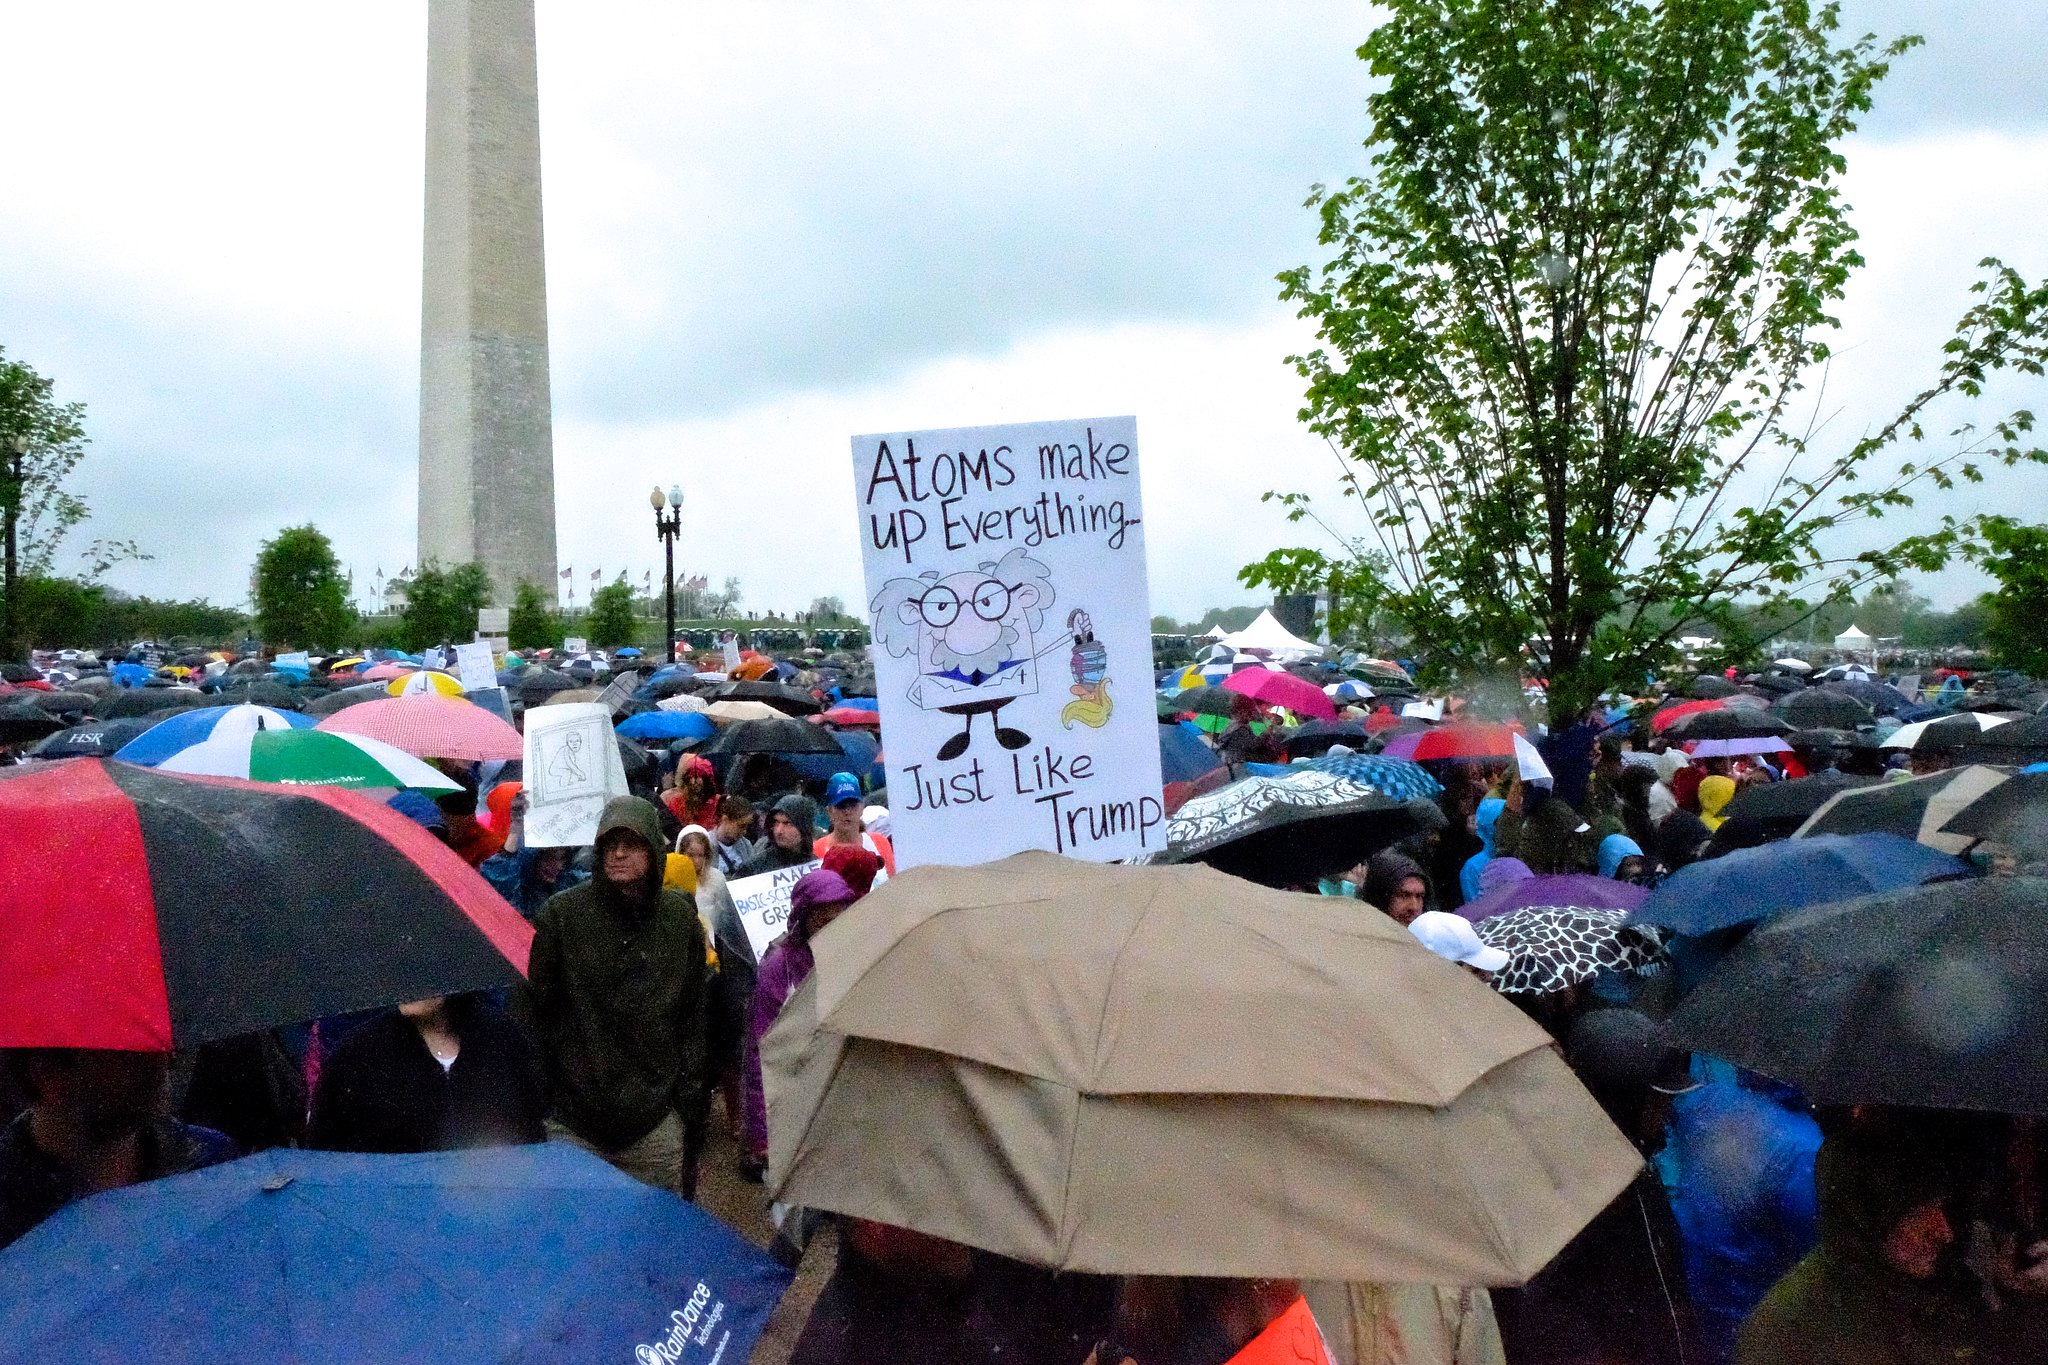 Activists converge in nation's capital to march for science